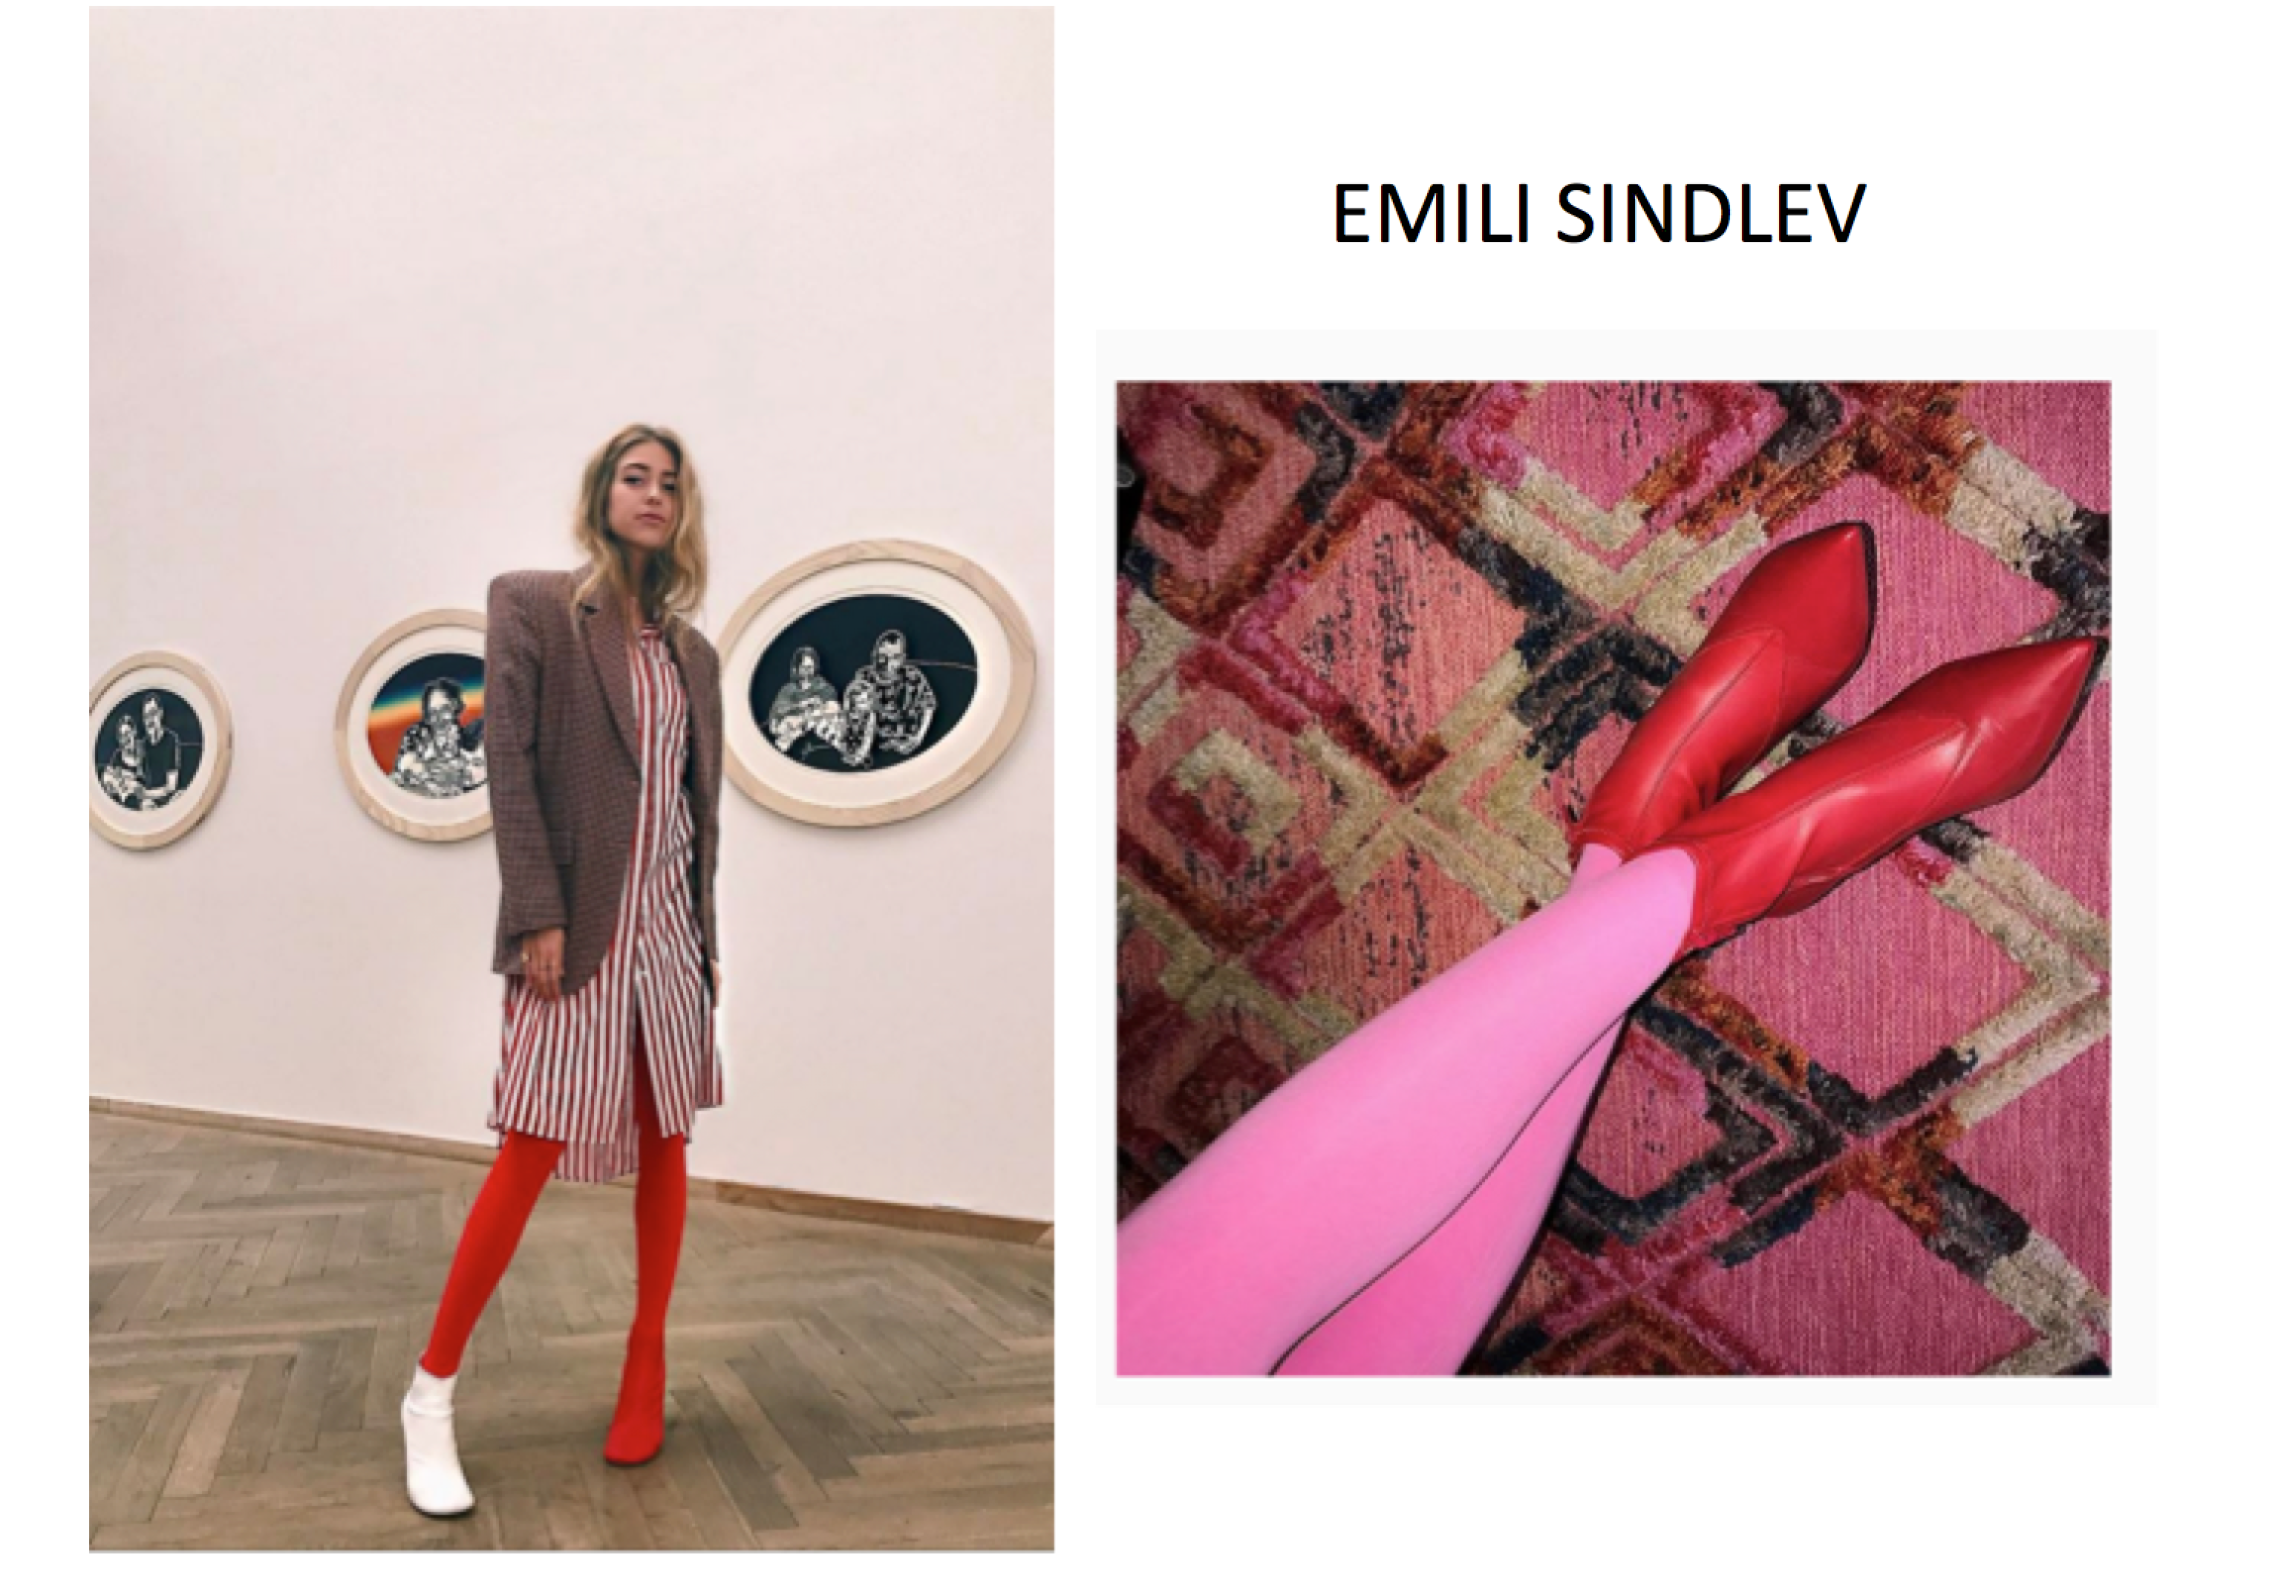 envelope_emili_sindlev_interview